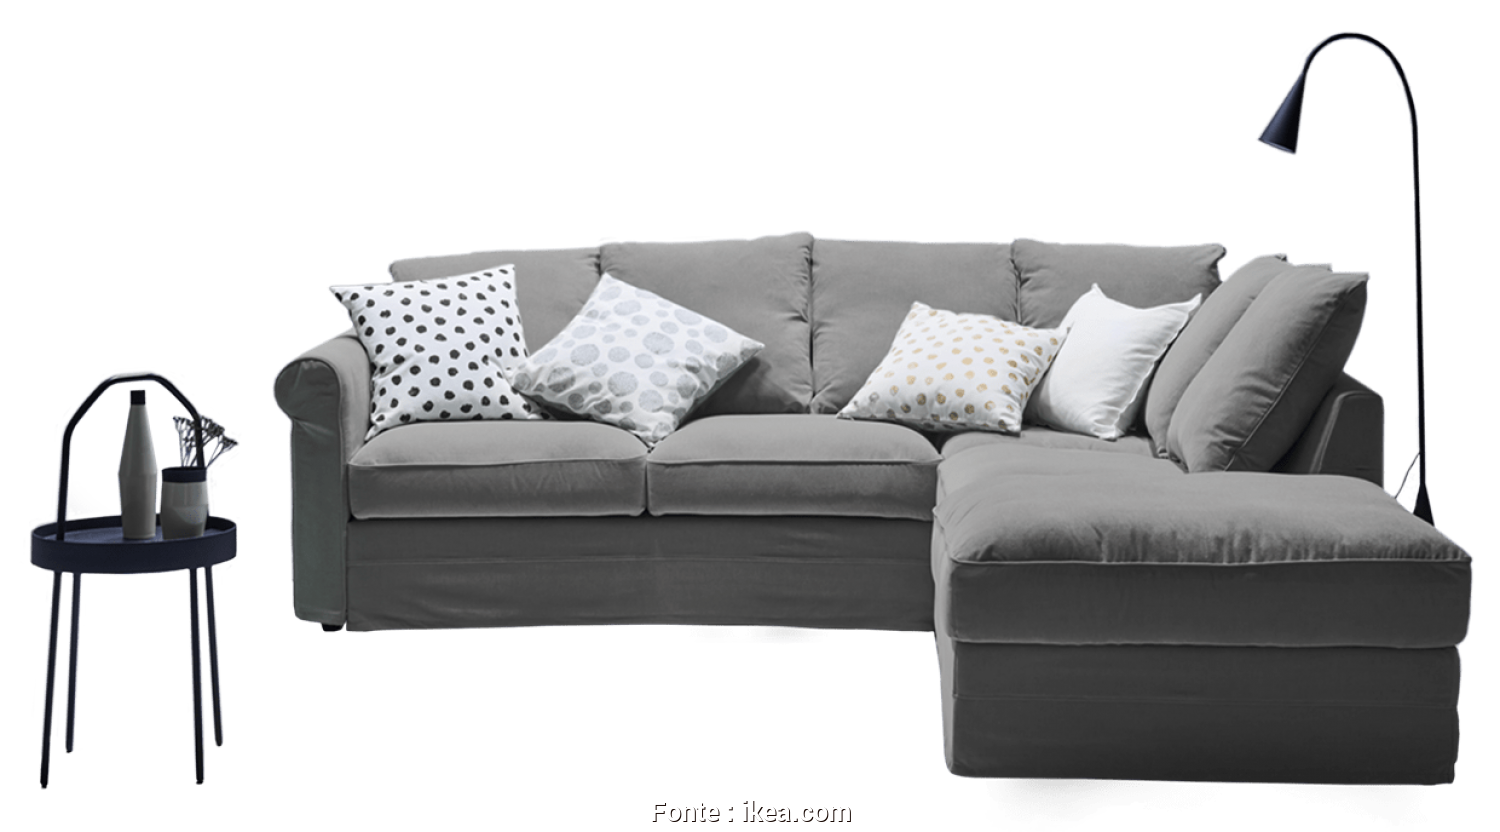 Backabro Bettsofa Ikea, Sbalorditivo Sofa-Finder: In 5 Schritten, Traumsofa, IKEA, IKEA